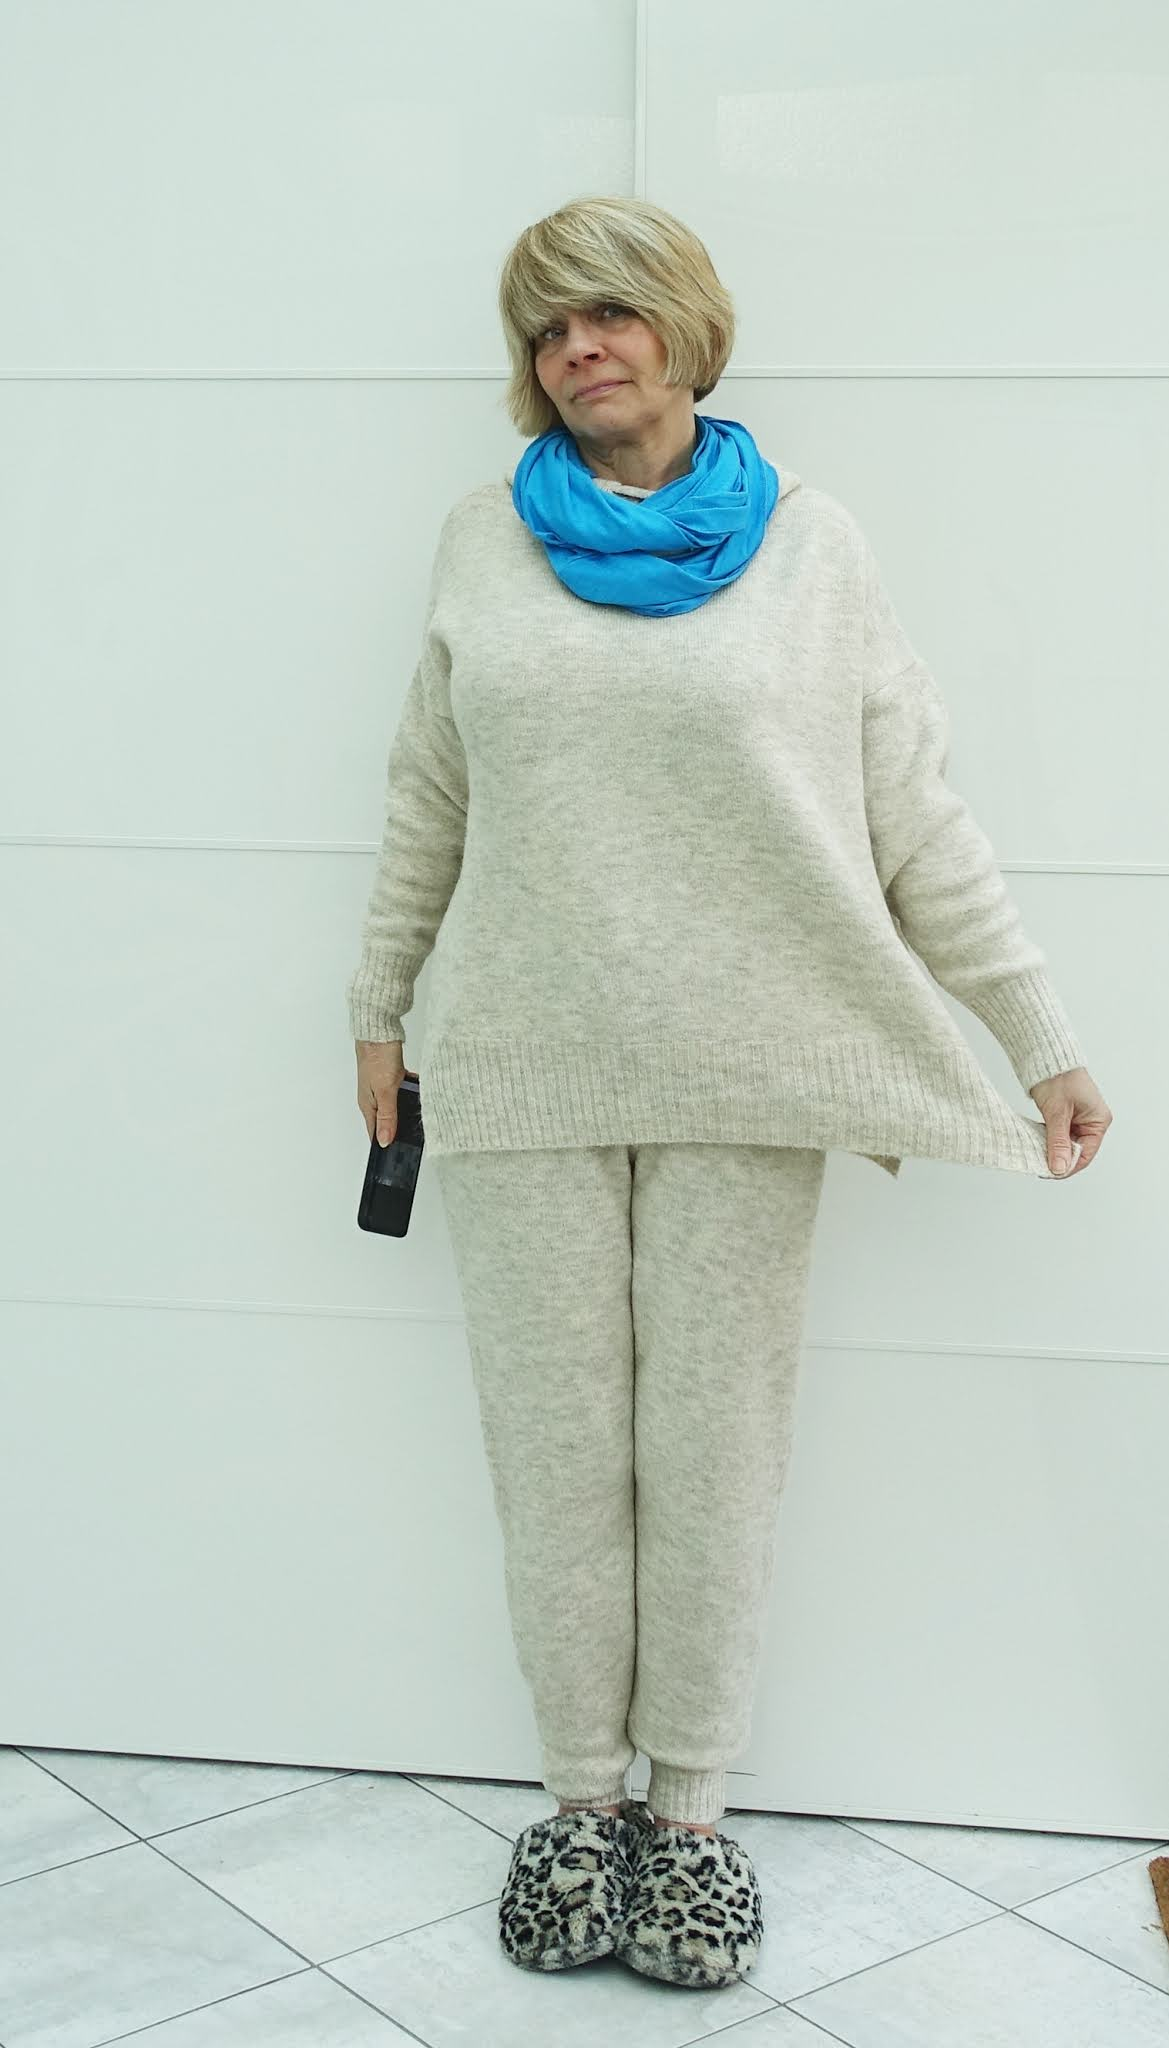 When your lounging hoody is huge - some tips from Is This Mutton blogger Gail Hanlon on improving the fit and dealing with a colour that doesn't suit you